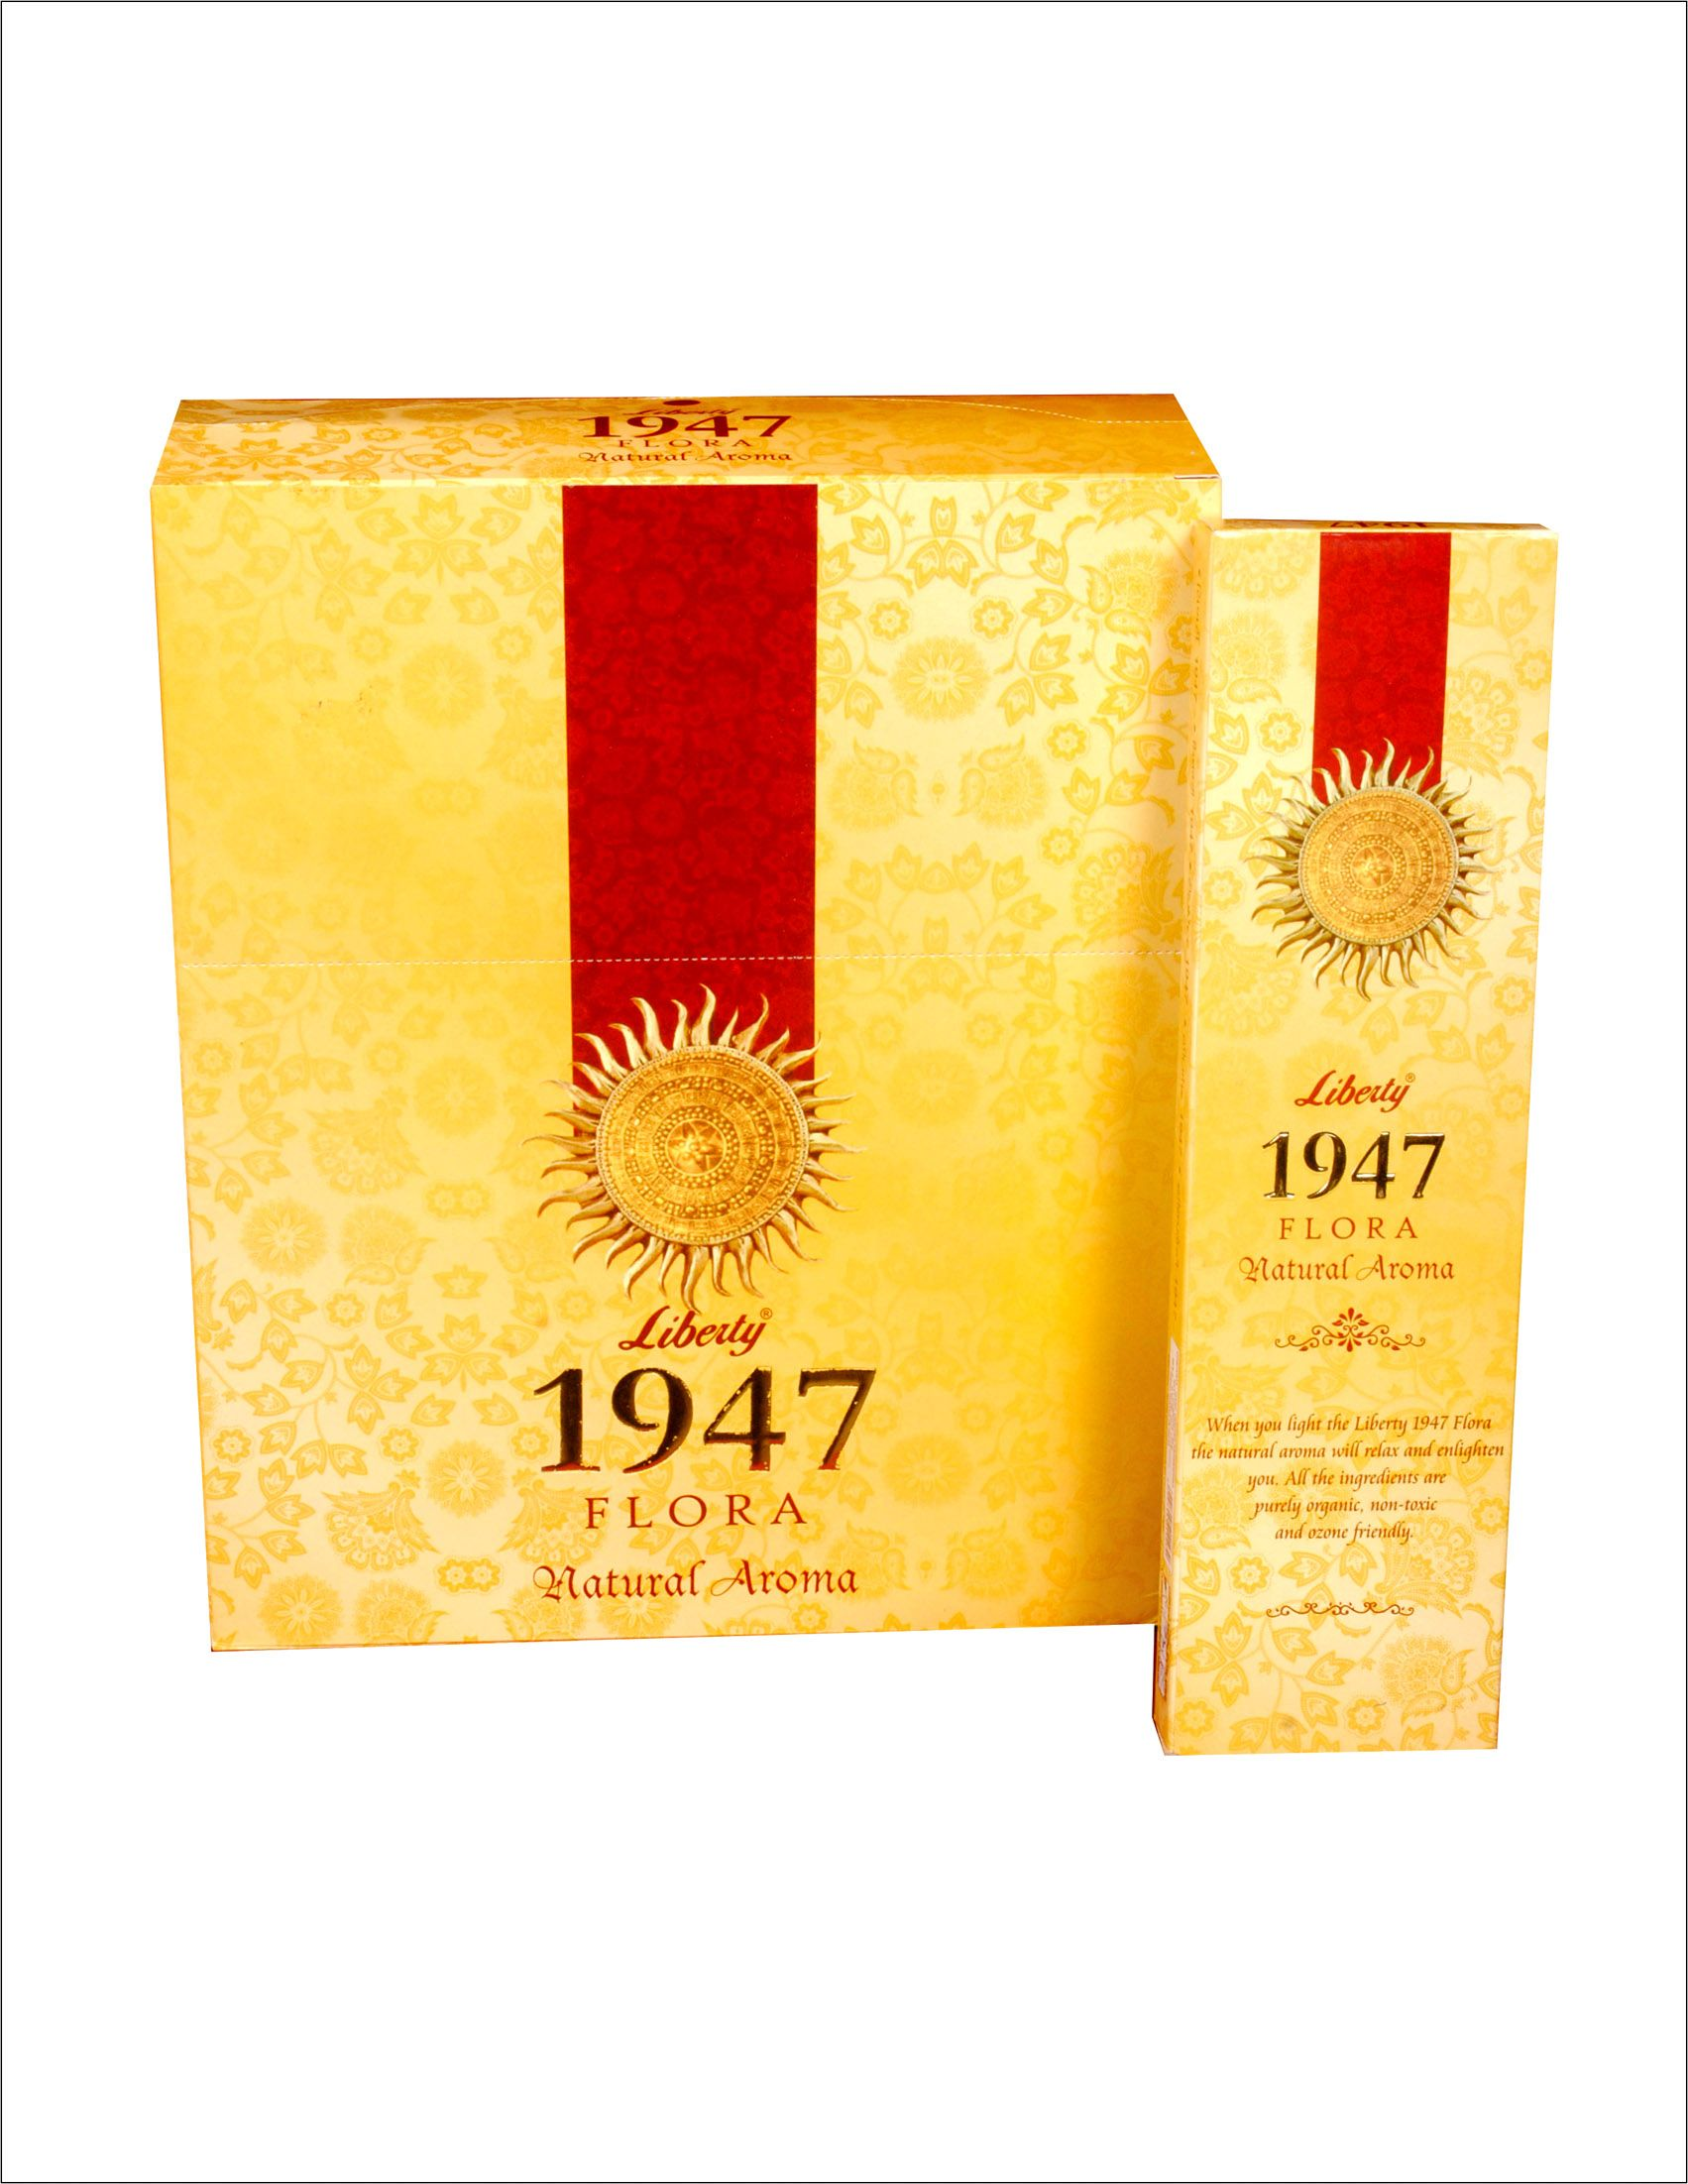 It was an authentic & pioneering achievement, realized by a series of marketing, research, product & packaging growth.